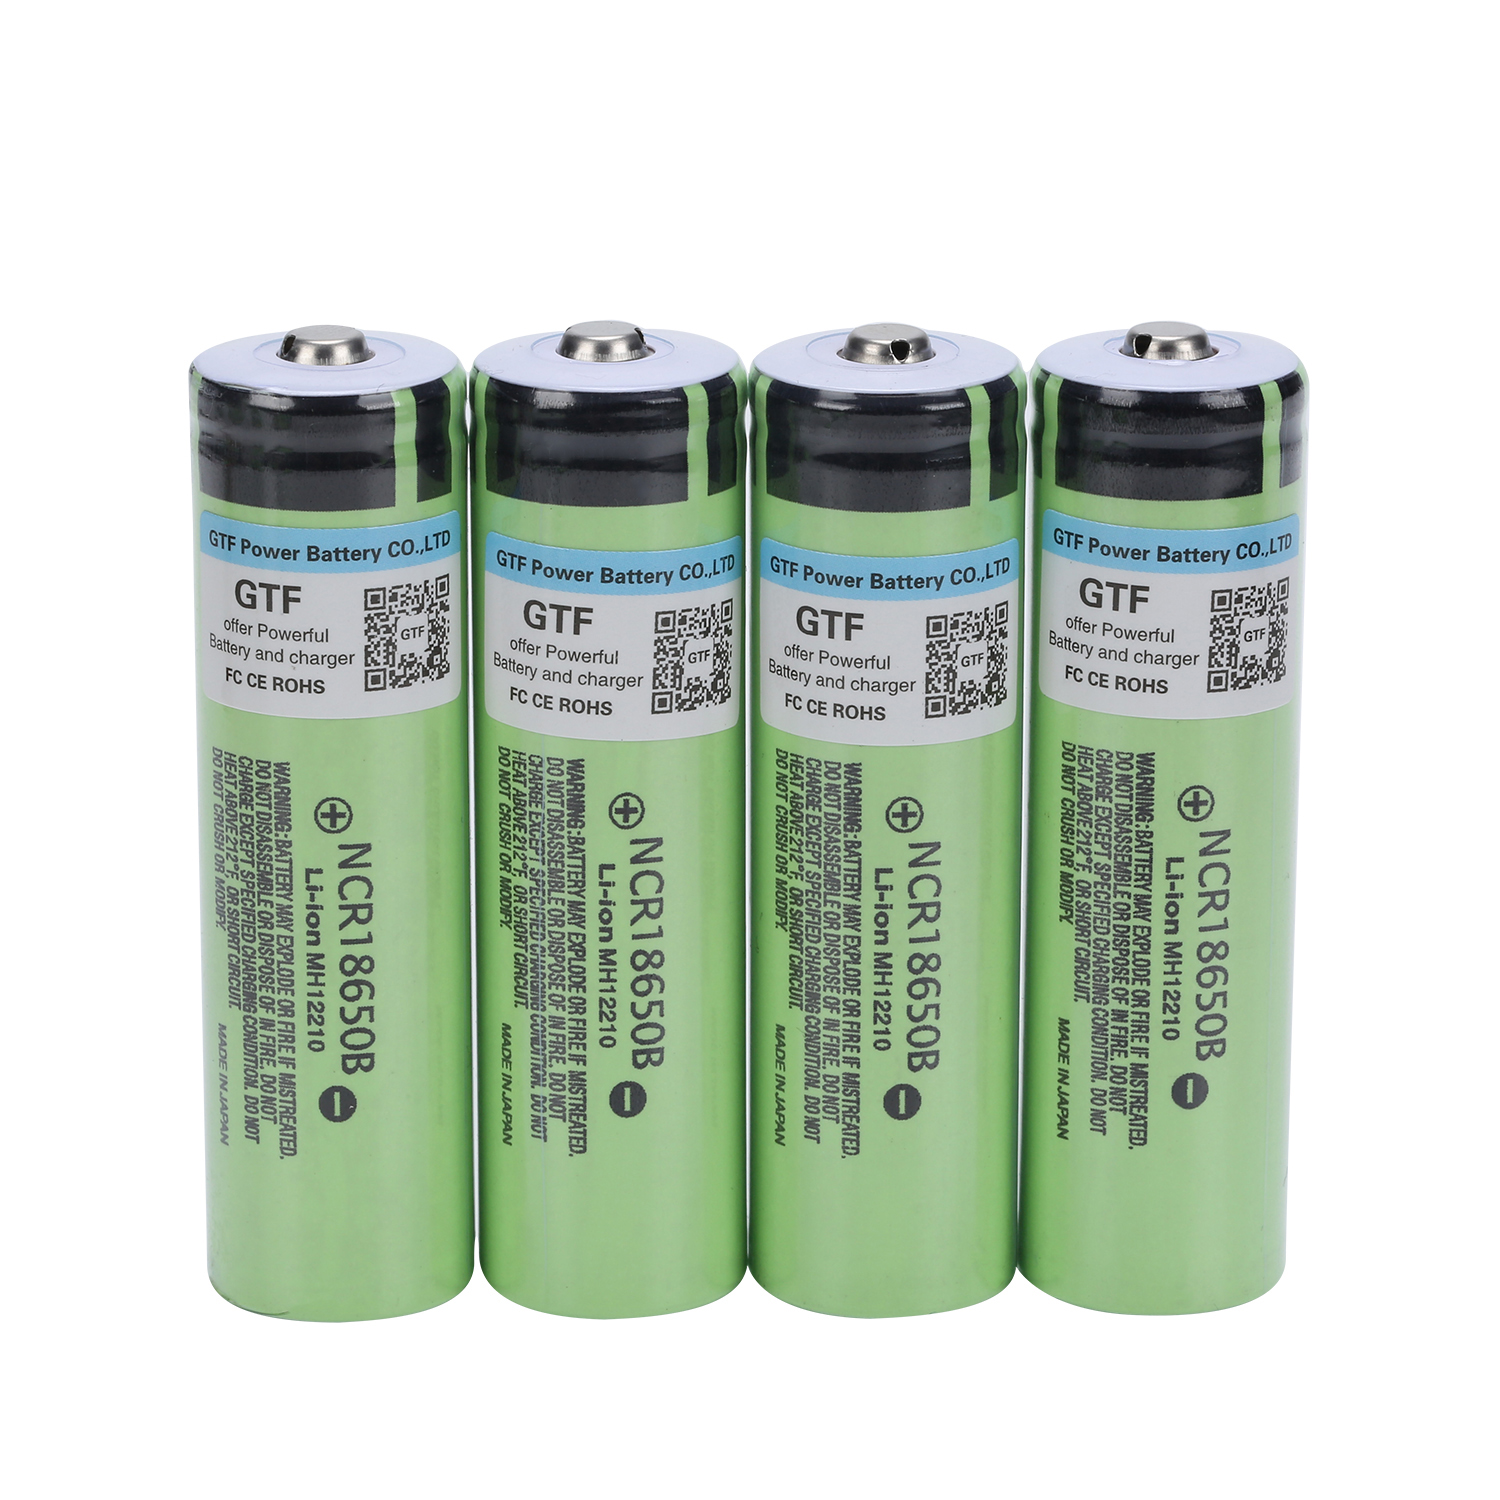 2019 100% New Original <font><b>NCR18650B</b></font> 3.7 v 3400 mah <font><b>18650</b></font> Lithium Rechargeable Battery For Flashlight batteries (NO PCB) image